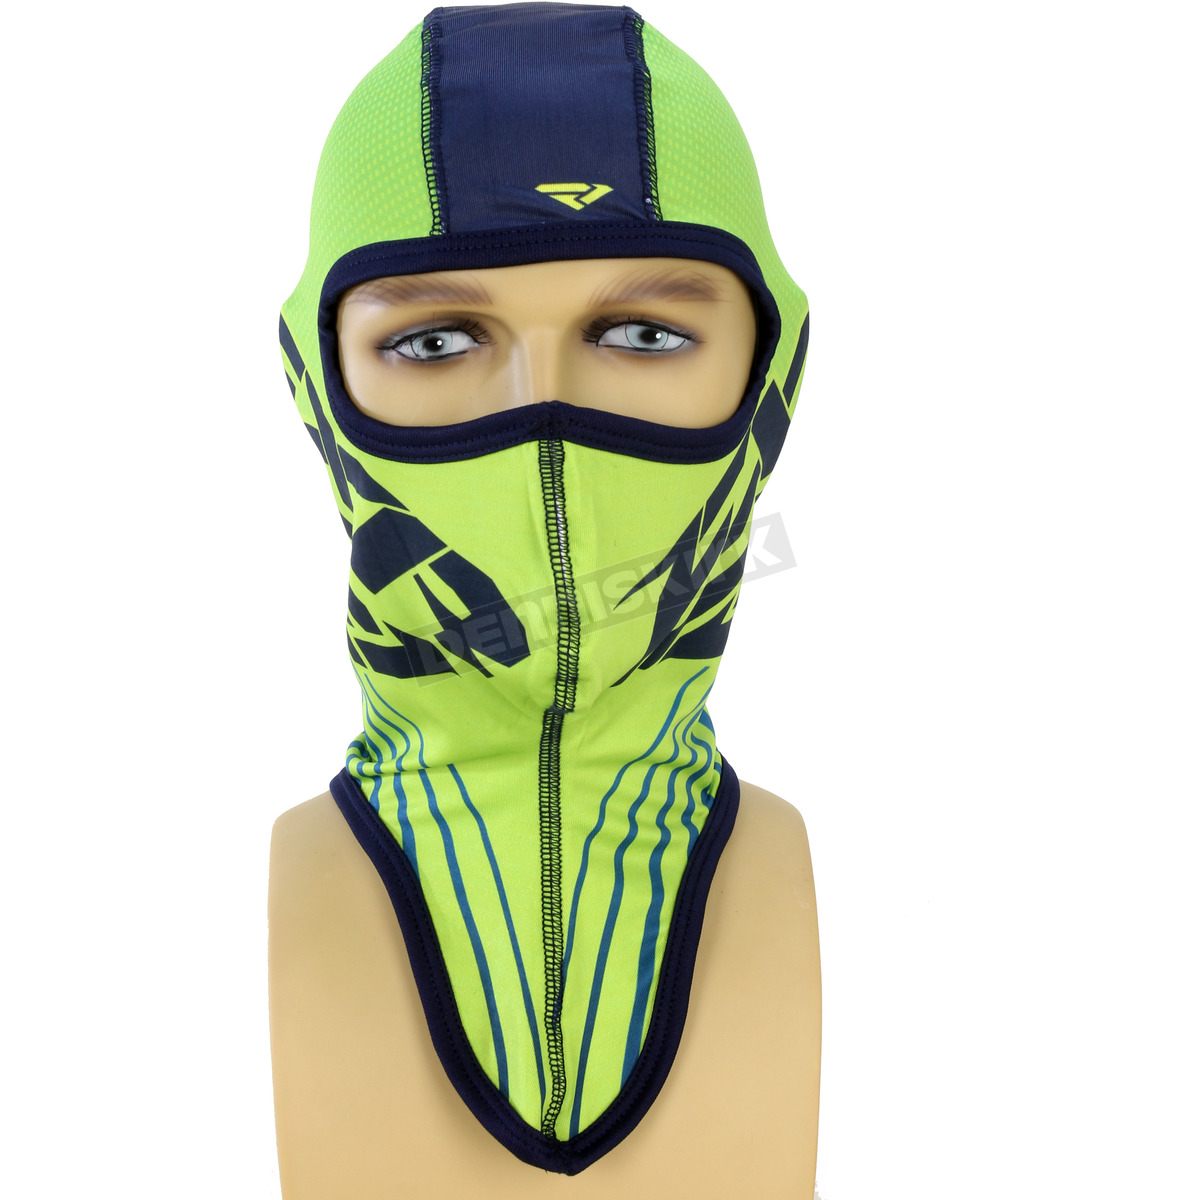 Harley Fxr Turbo: FXR Racing Hi Vis/Navy Turbo Balaclava